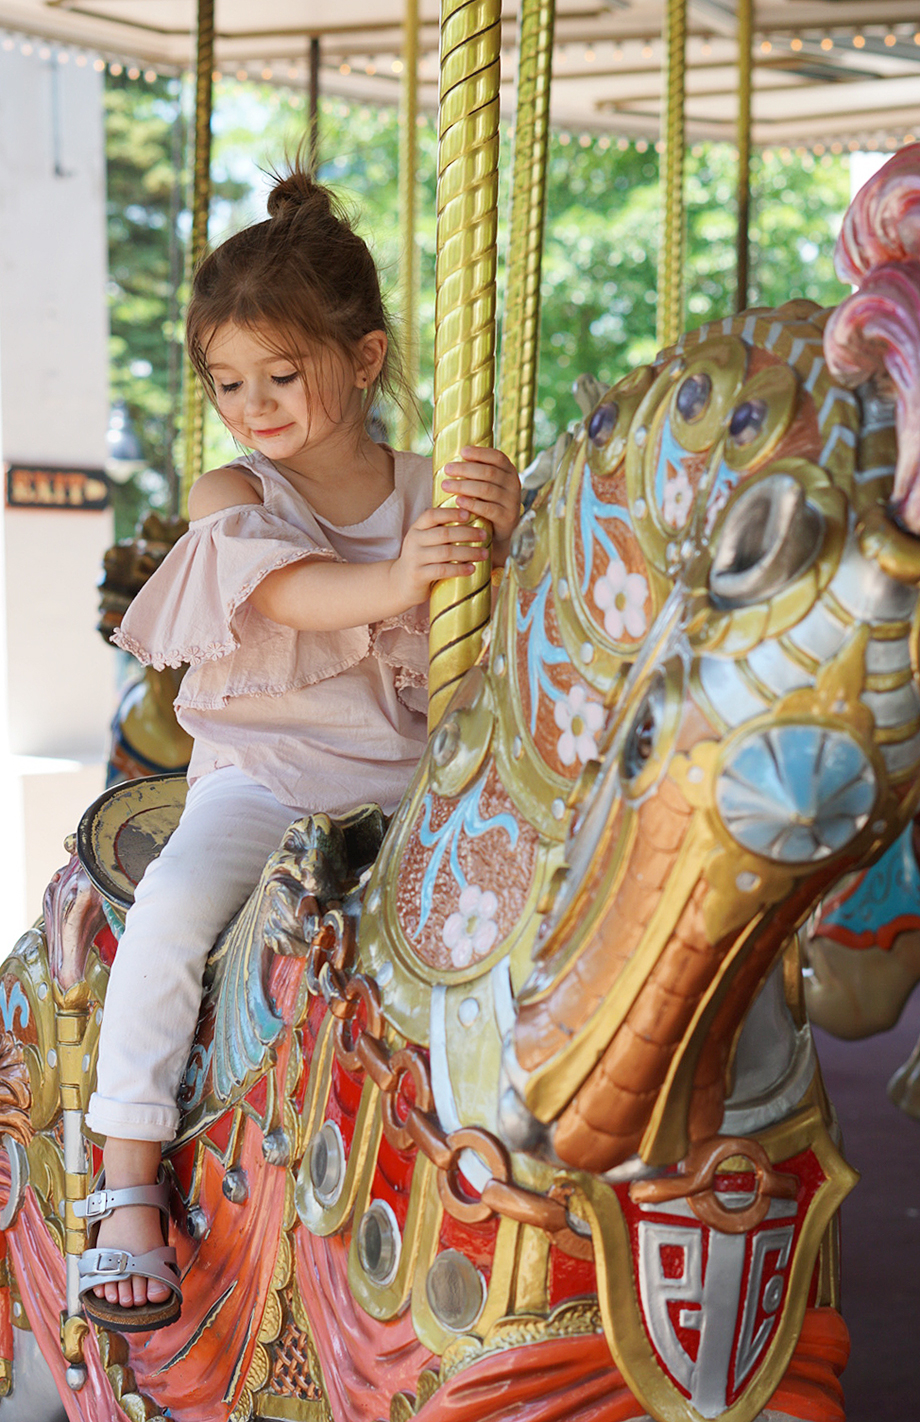 Zelda on the carousel at Six Flags.